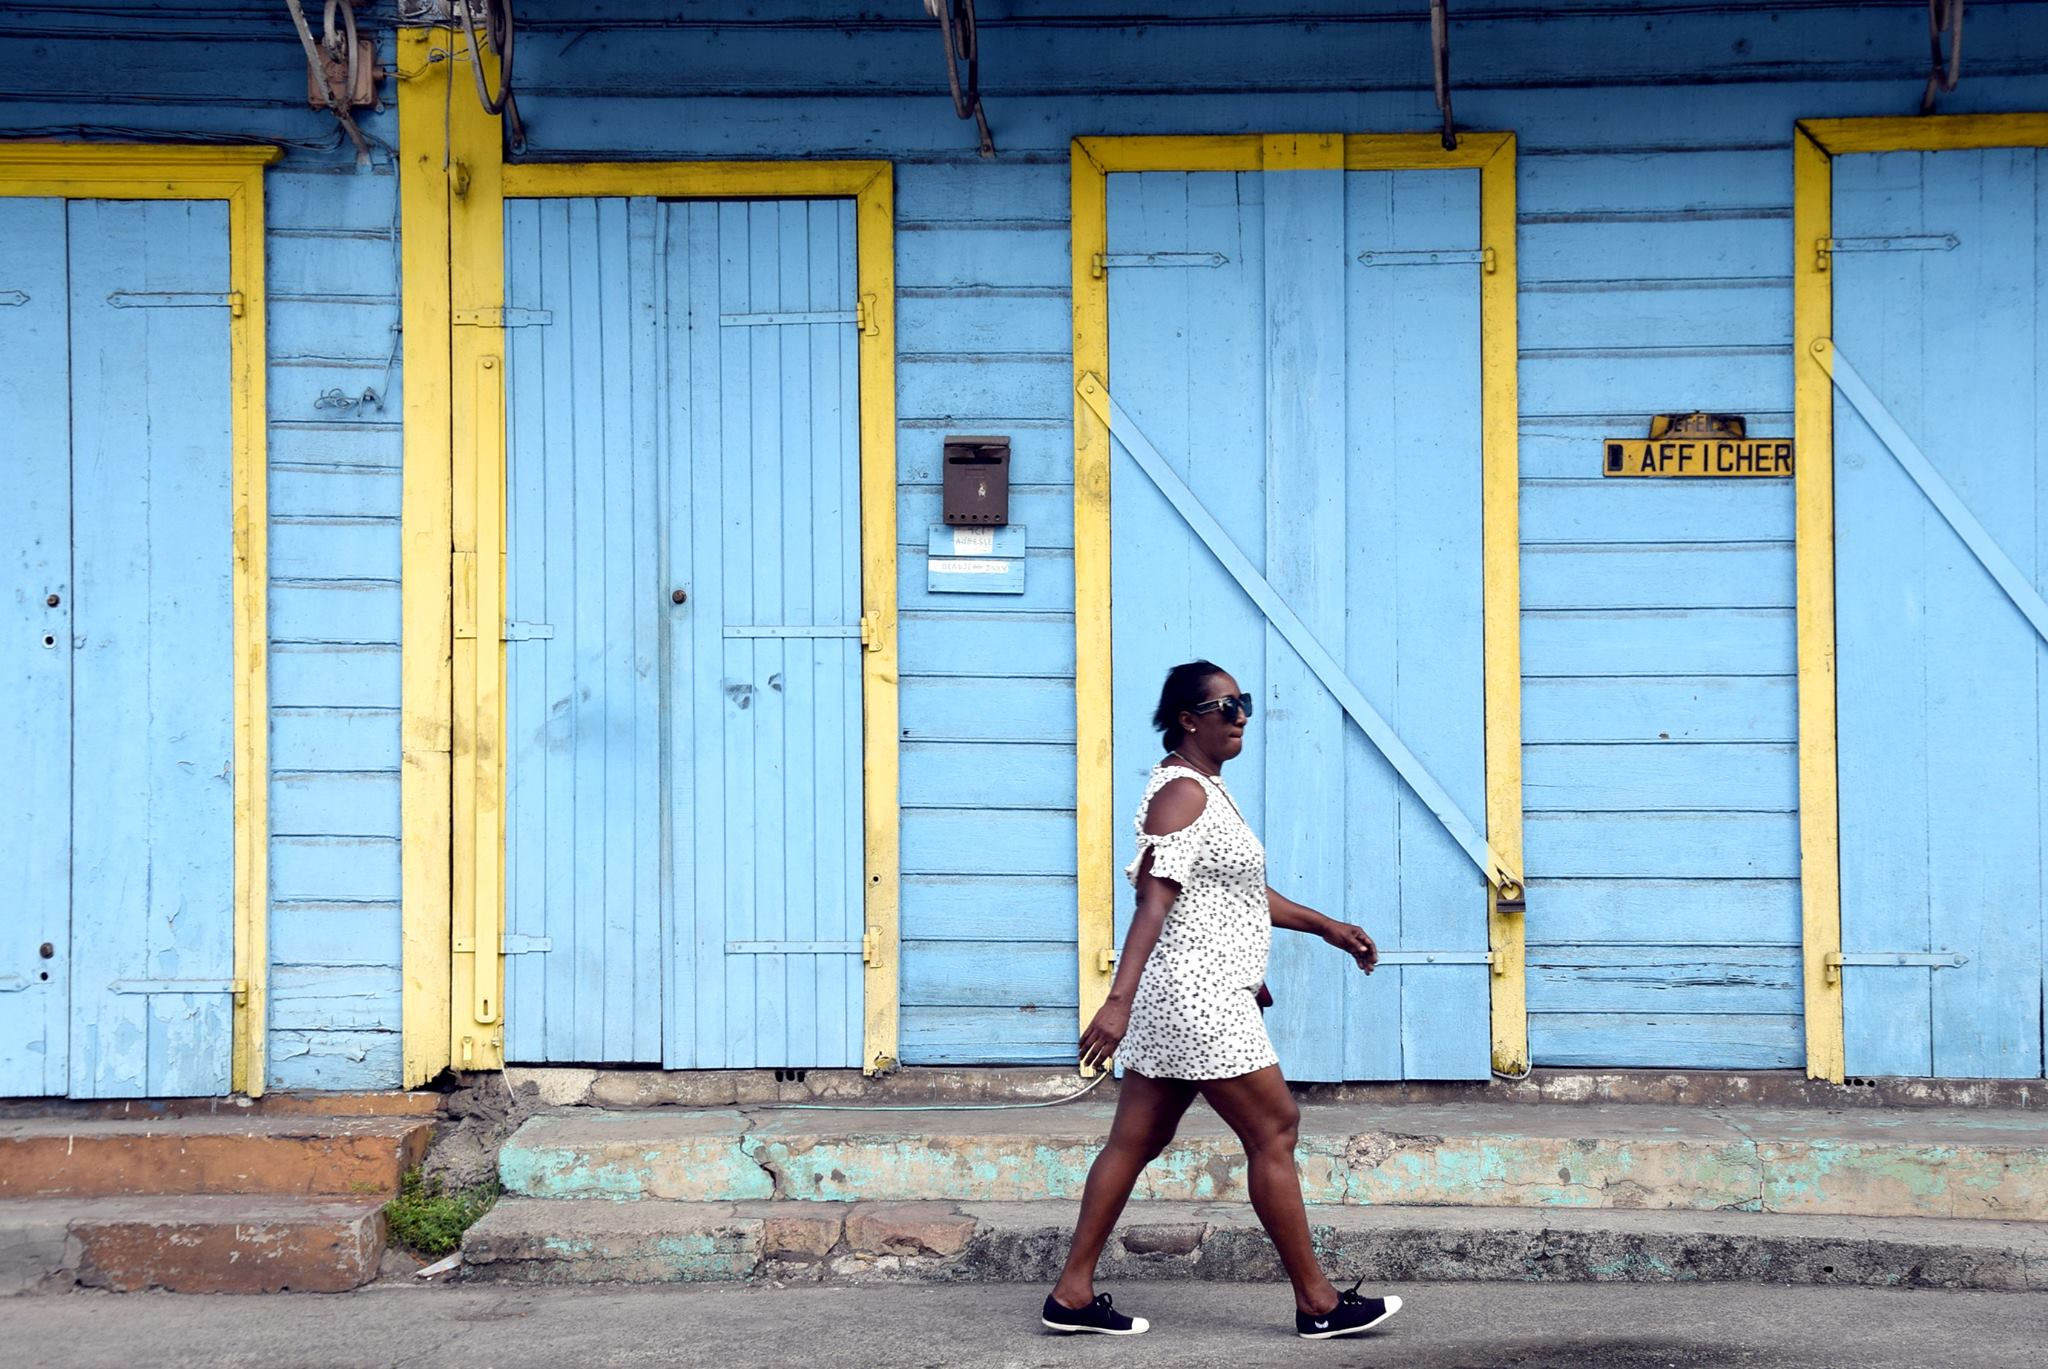 reportage-photo-en-guadeloupe-achat-libr